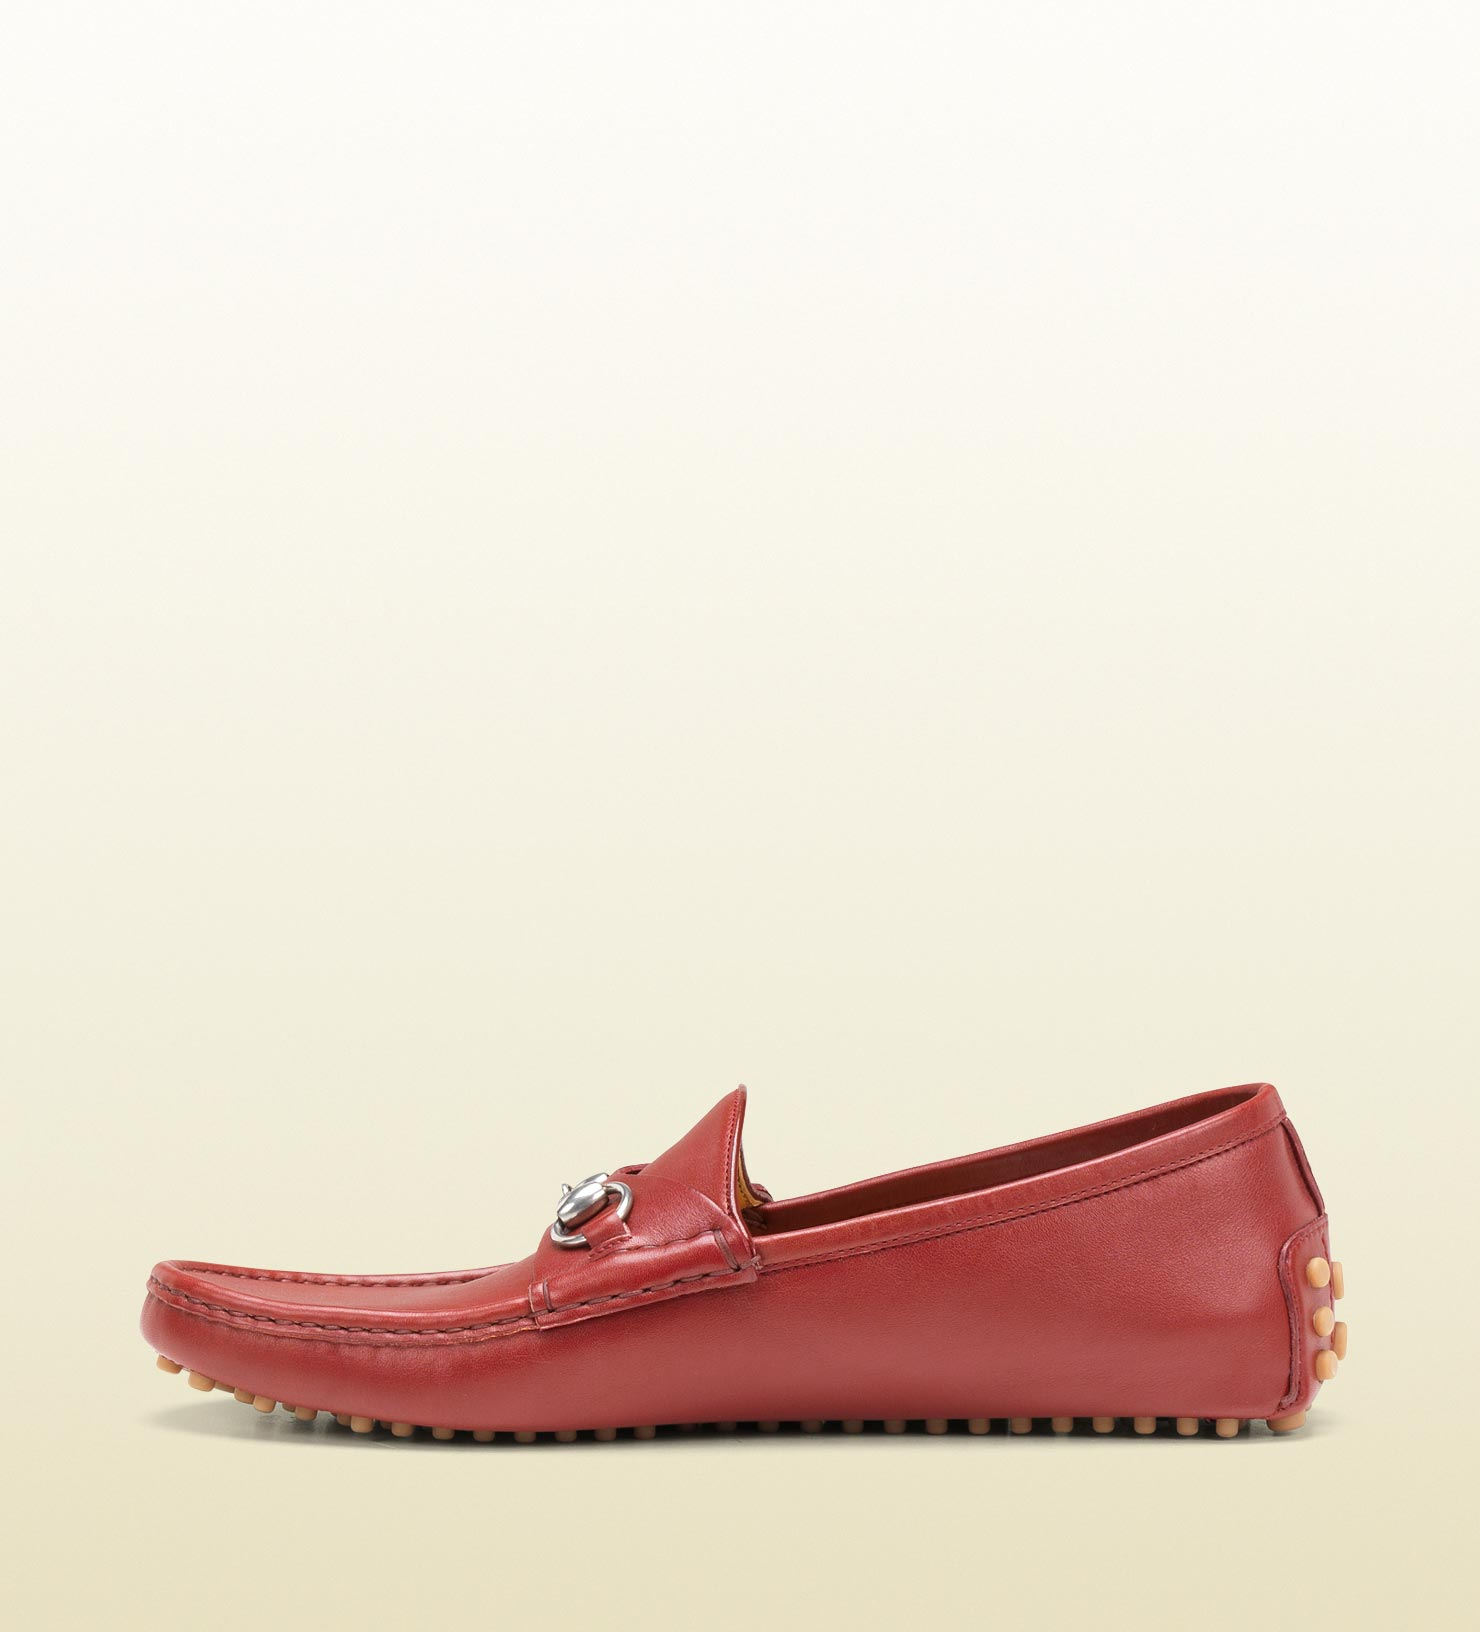 gucci horsebit driver in red for men lyst  gucci house slippers